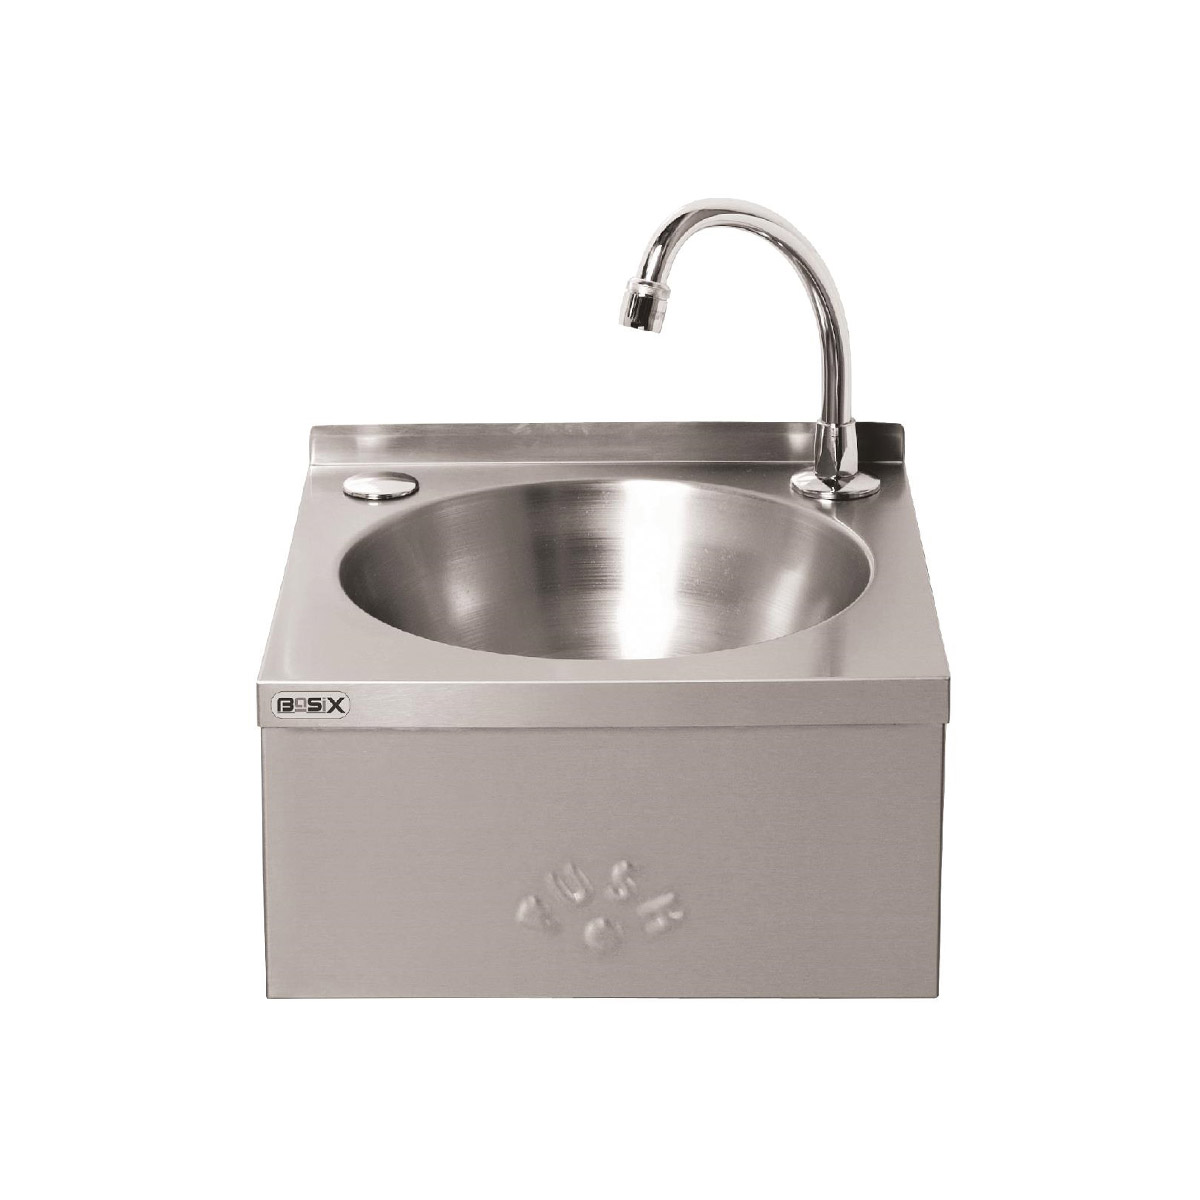 Basix Stainless Steel Knee Operated Hand Wash Basin